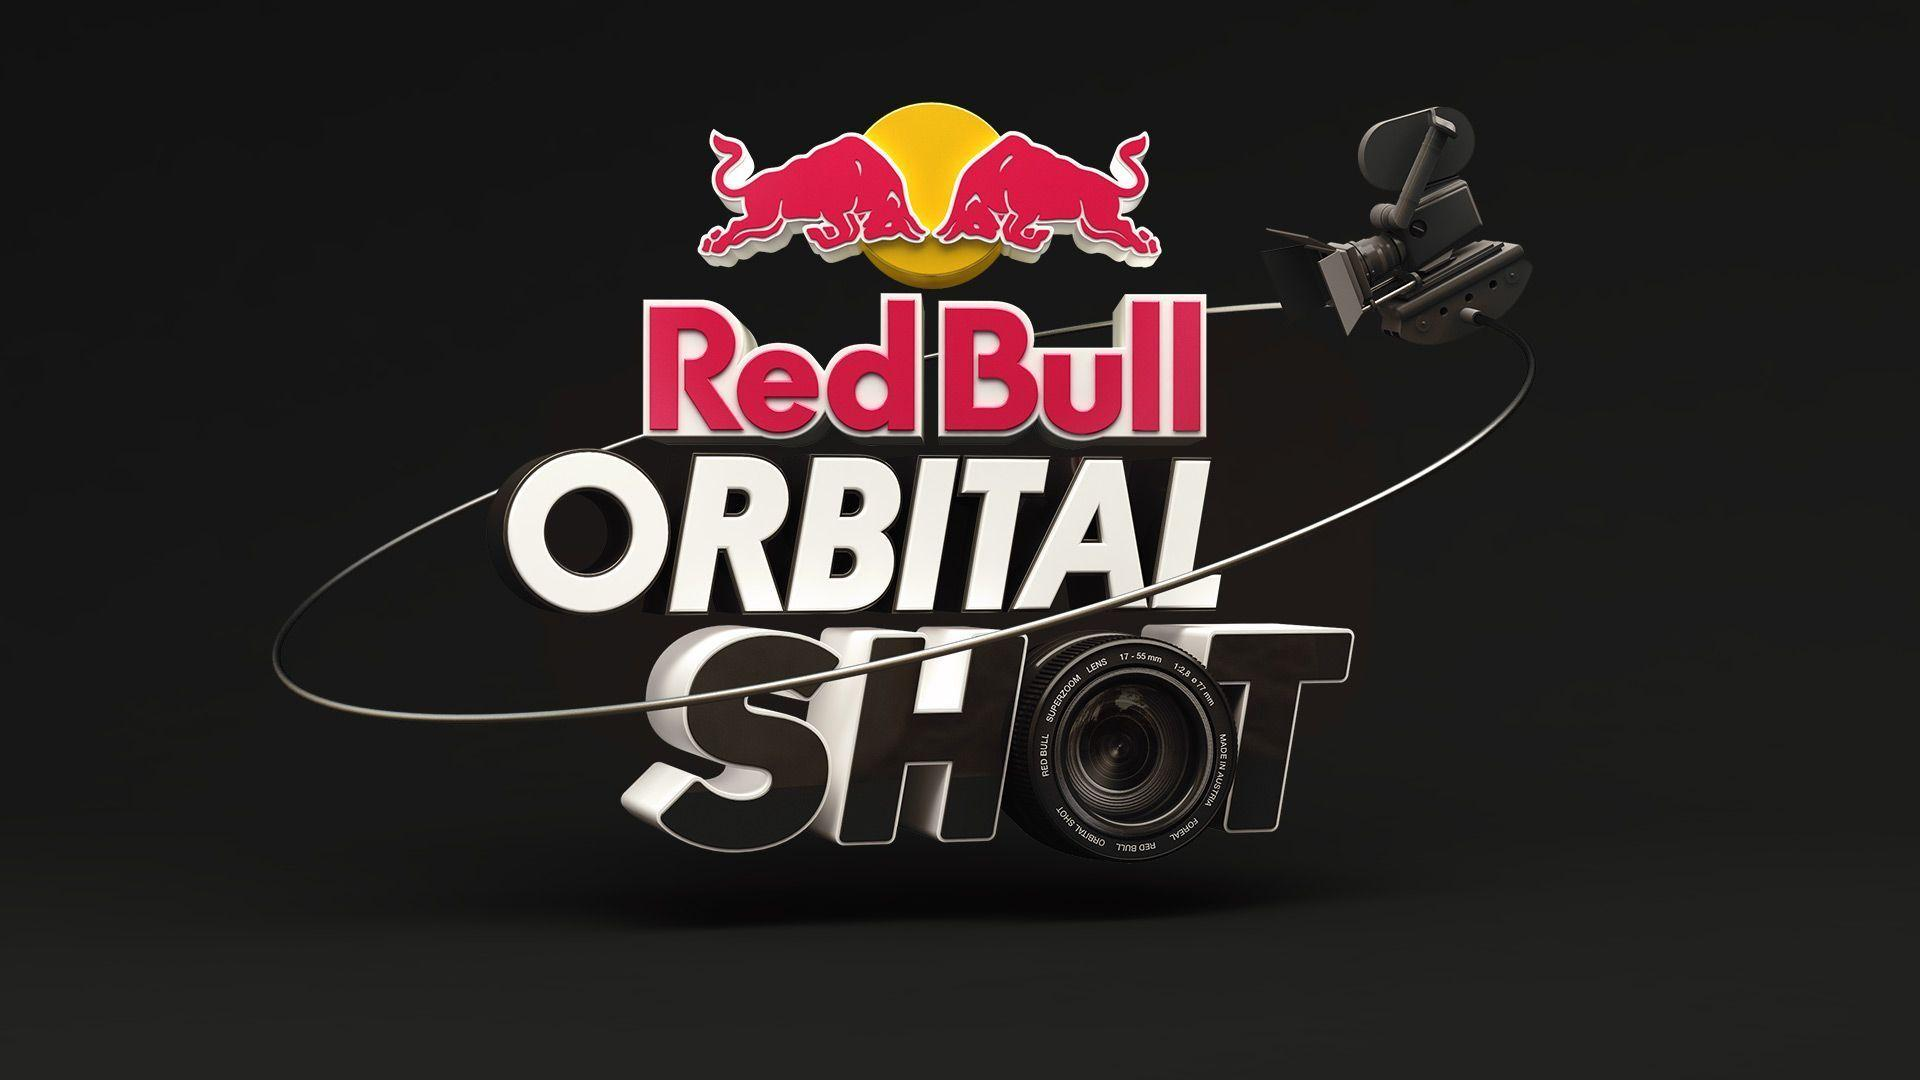 3D Logo for Red Bull s Orbital Wallpapers 1920x1080